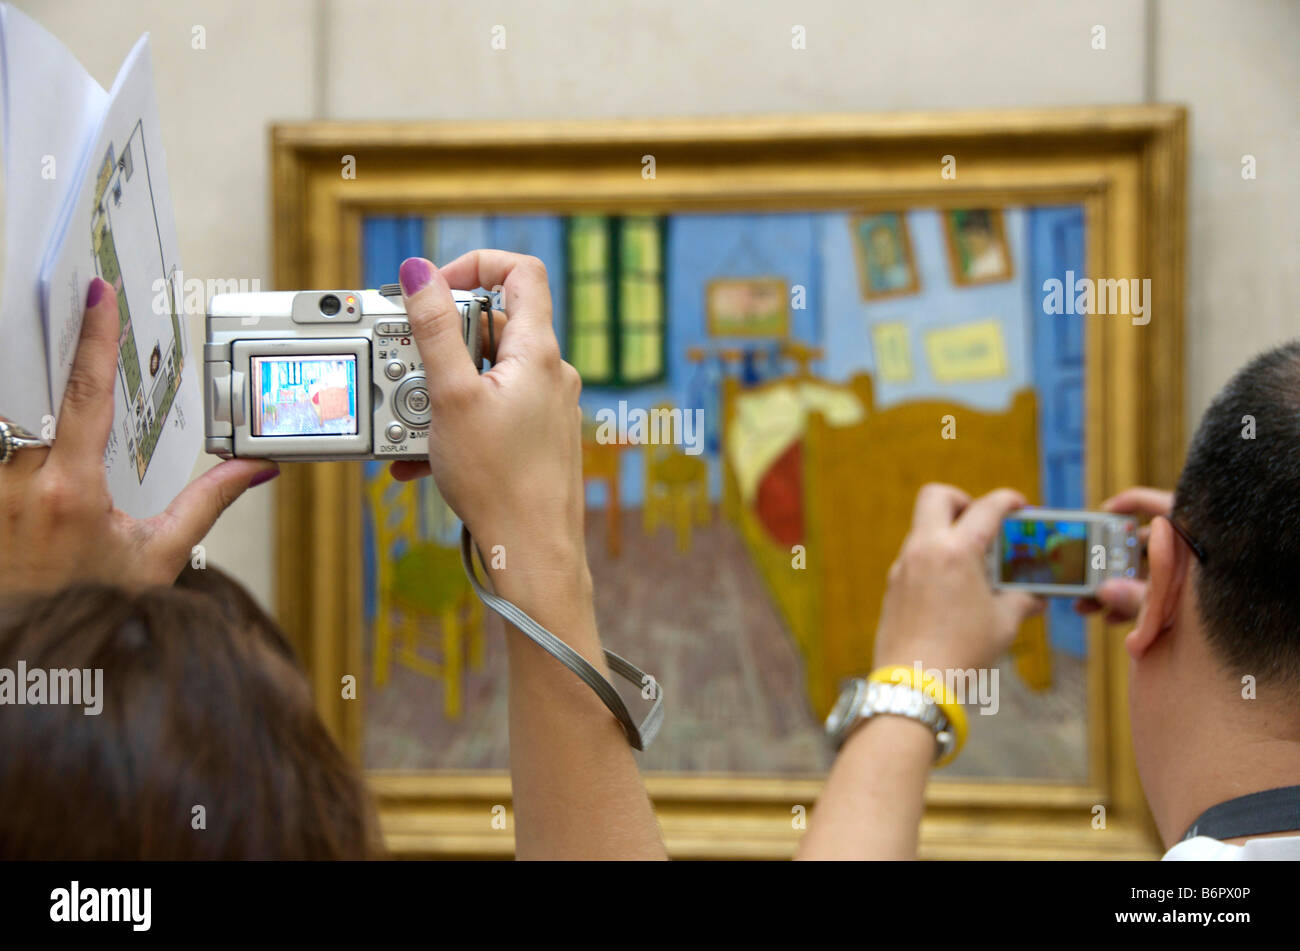 Tourists photographing a Vincent Van Gogh painting in the Musée d'Orsay, Paris - Stock Image